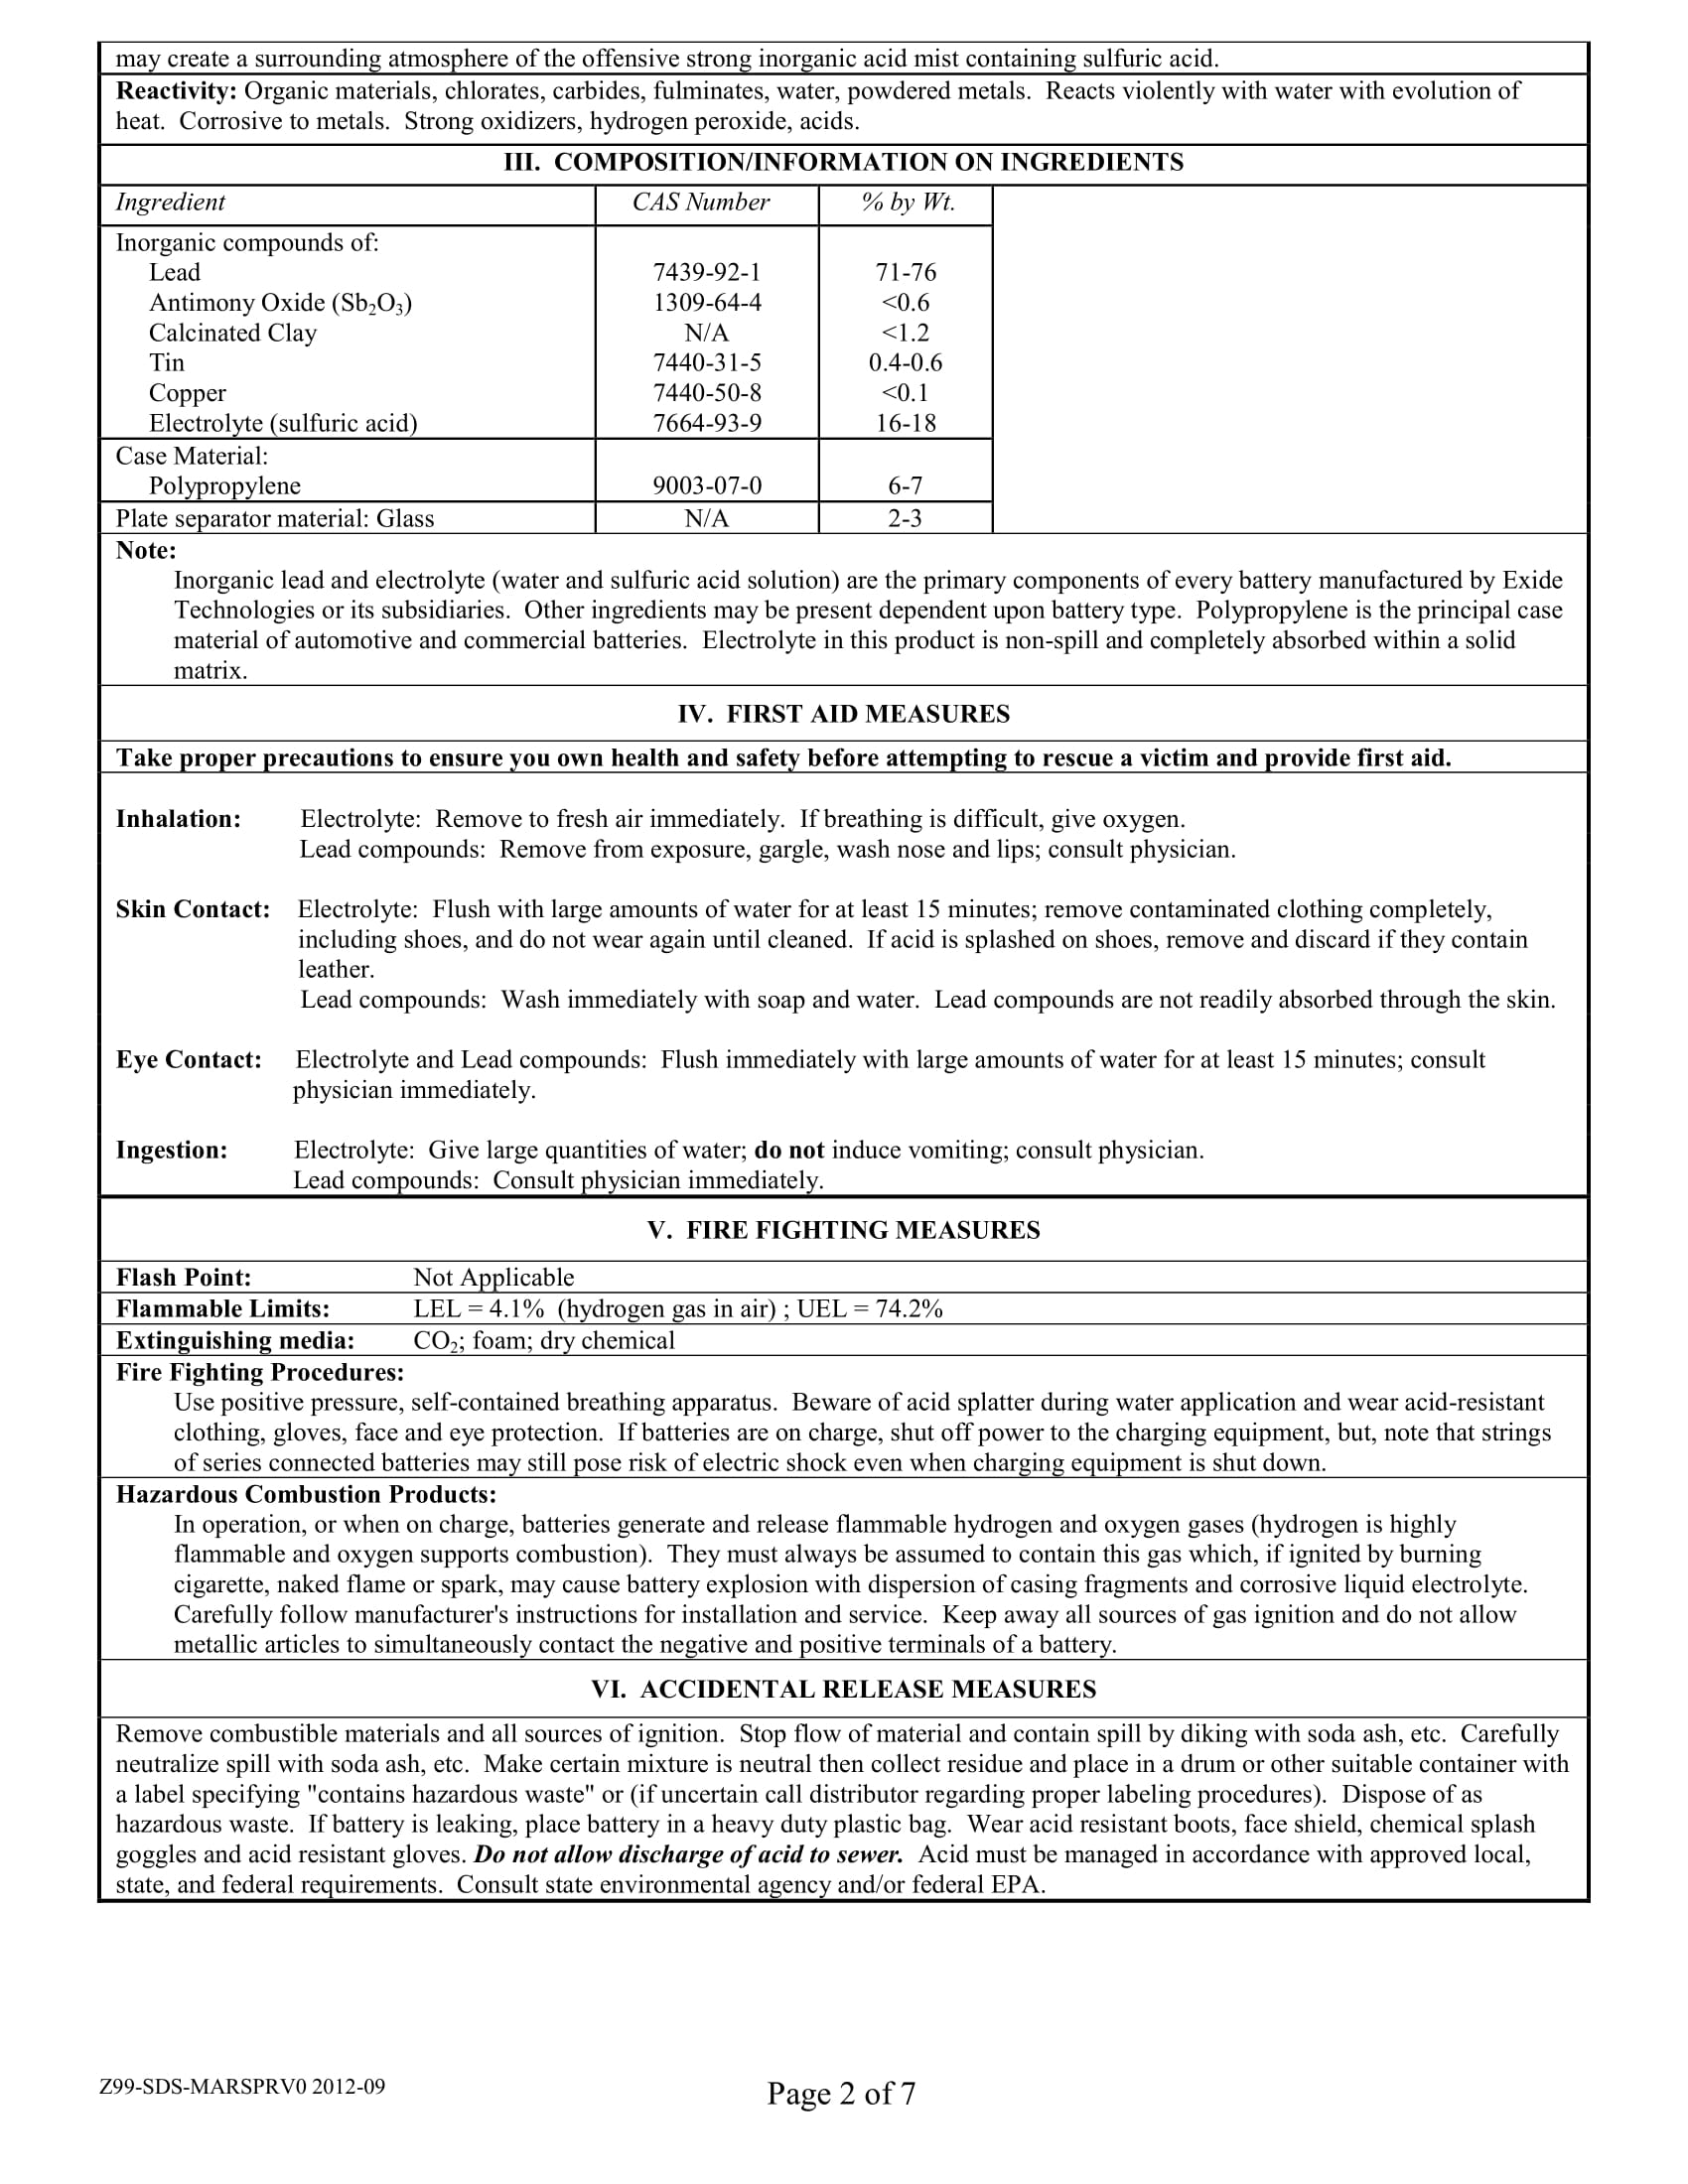 Marathon Batteries Safety Data Sheet